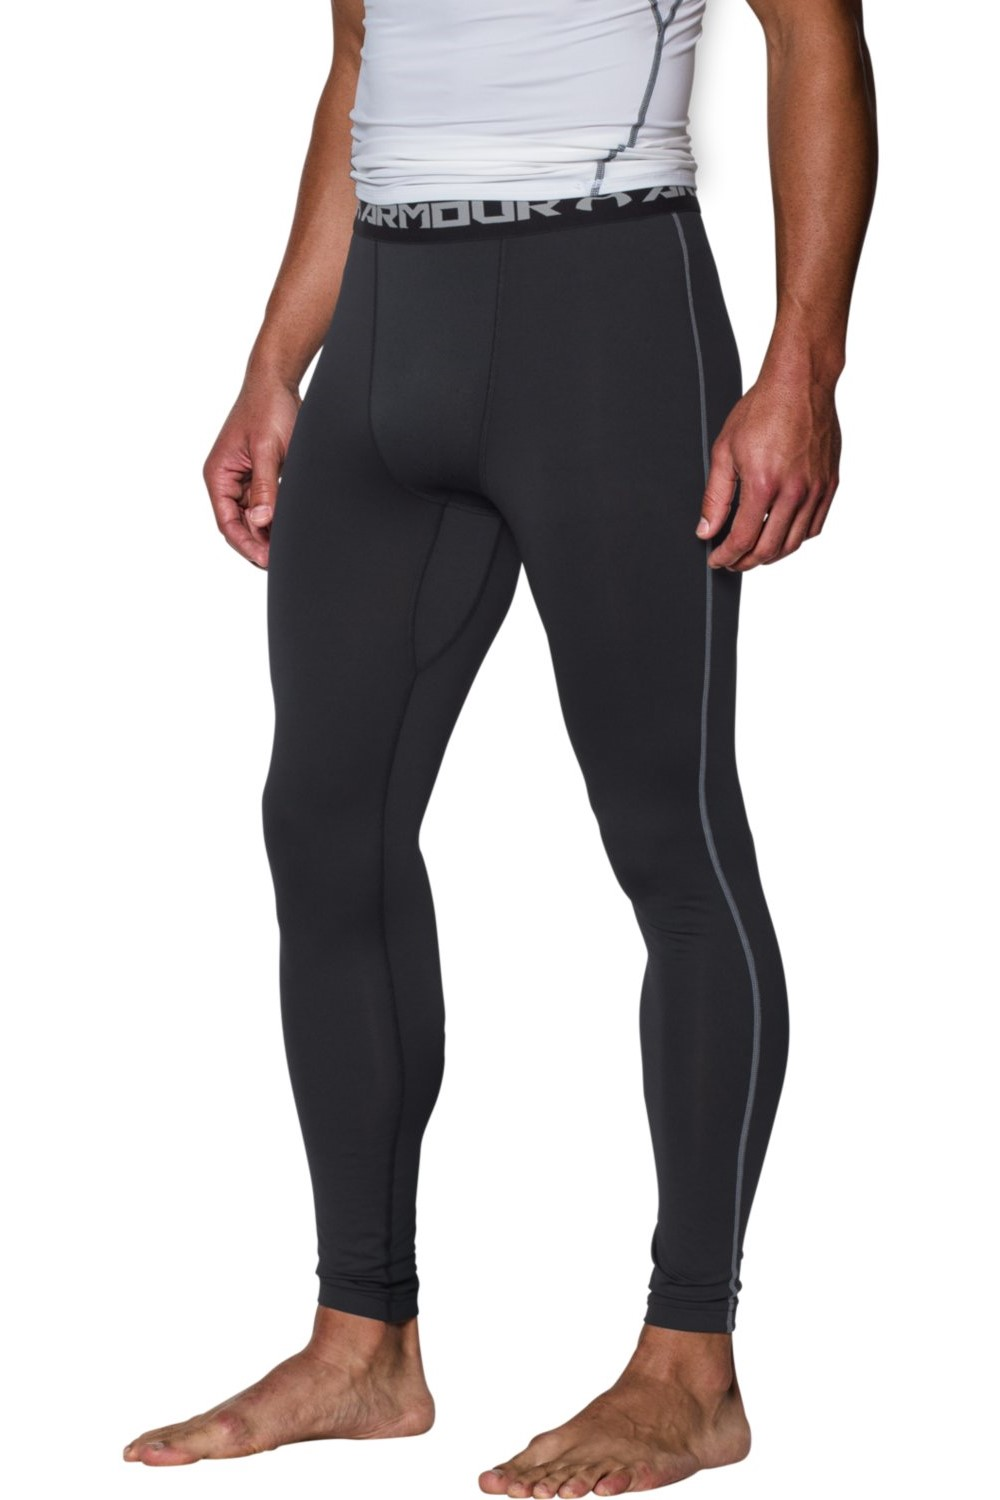 c4b725824c Under Armour férfi kompressziós leggings - Armour CG - Férfi ...